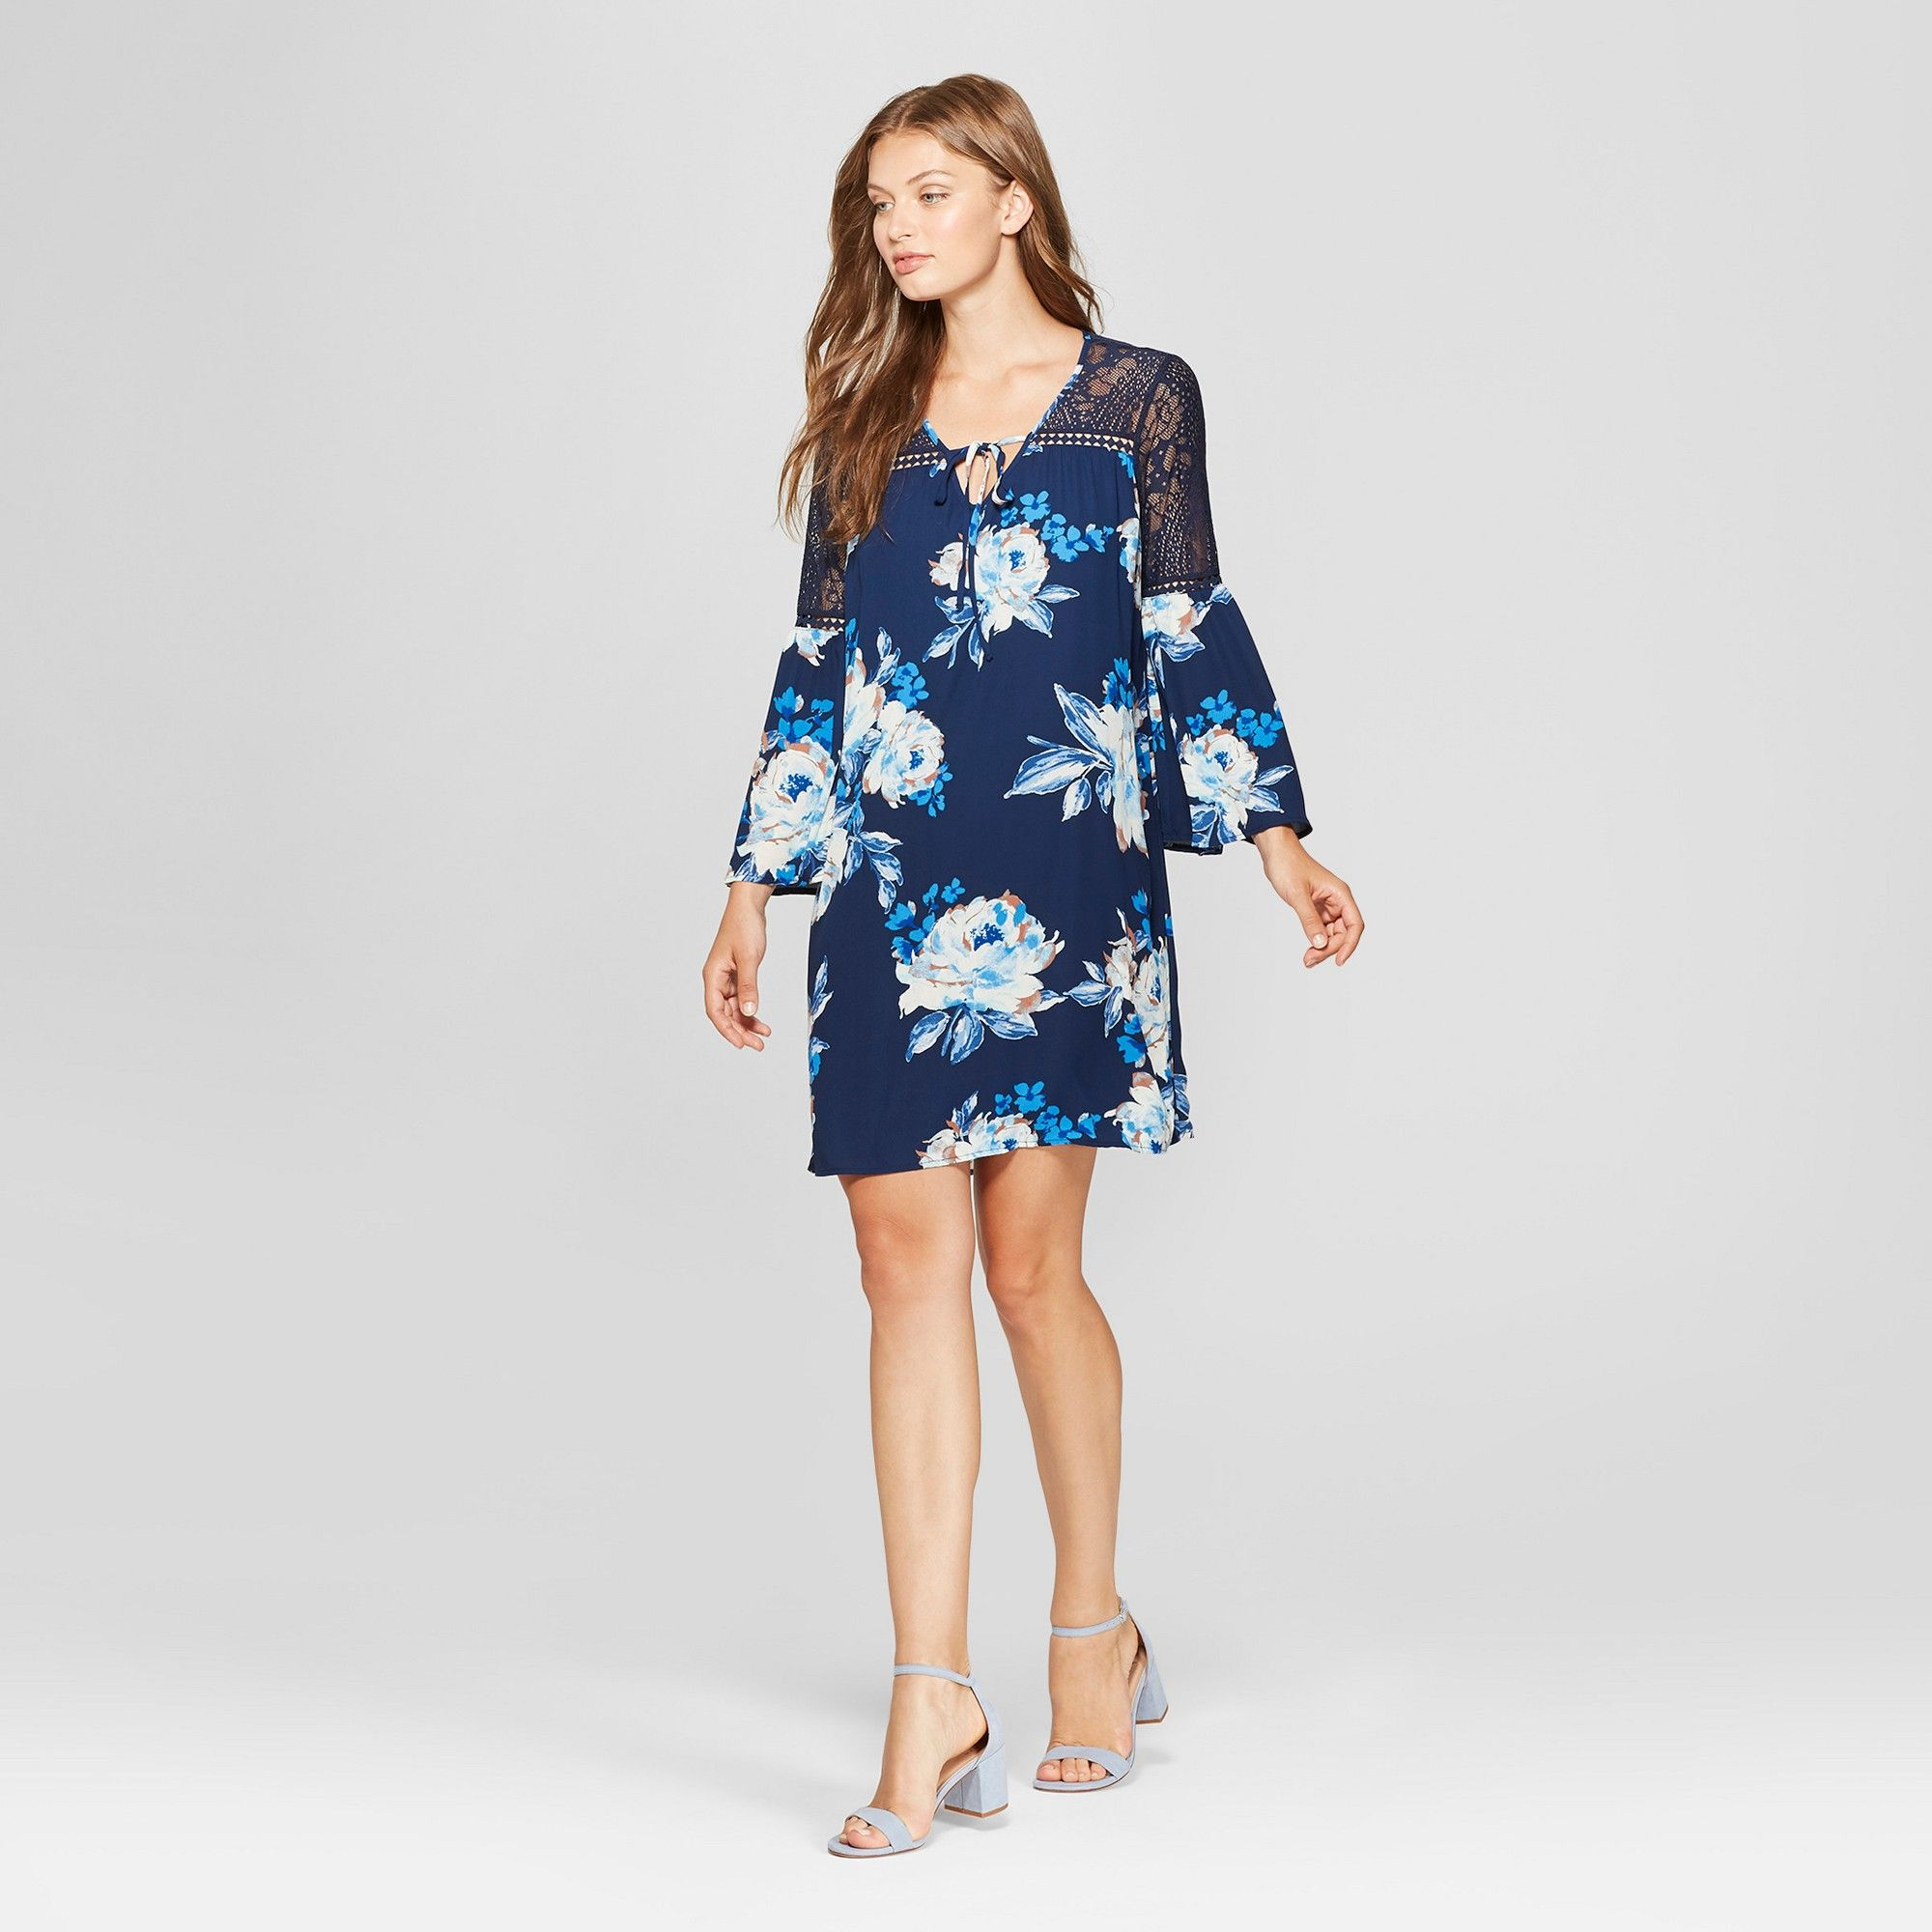 Women S 3 4 Sleeve Floral Print Lace Sleeve Shift Dress Lux Ii Navy 14 Blue Prom Dresses With Pockets Floral Cocktail Dress Shift Dress [ 2000 x 2000 Pixel ]